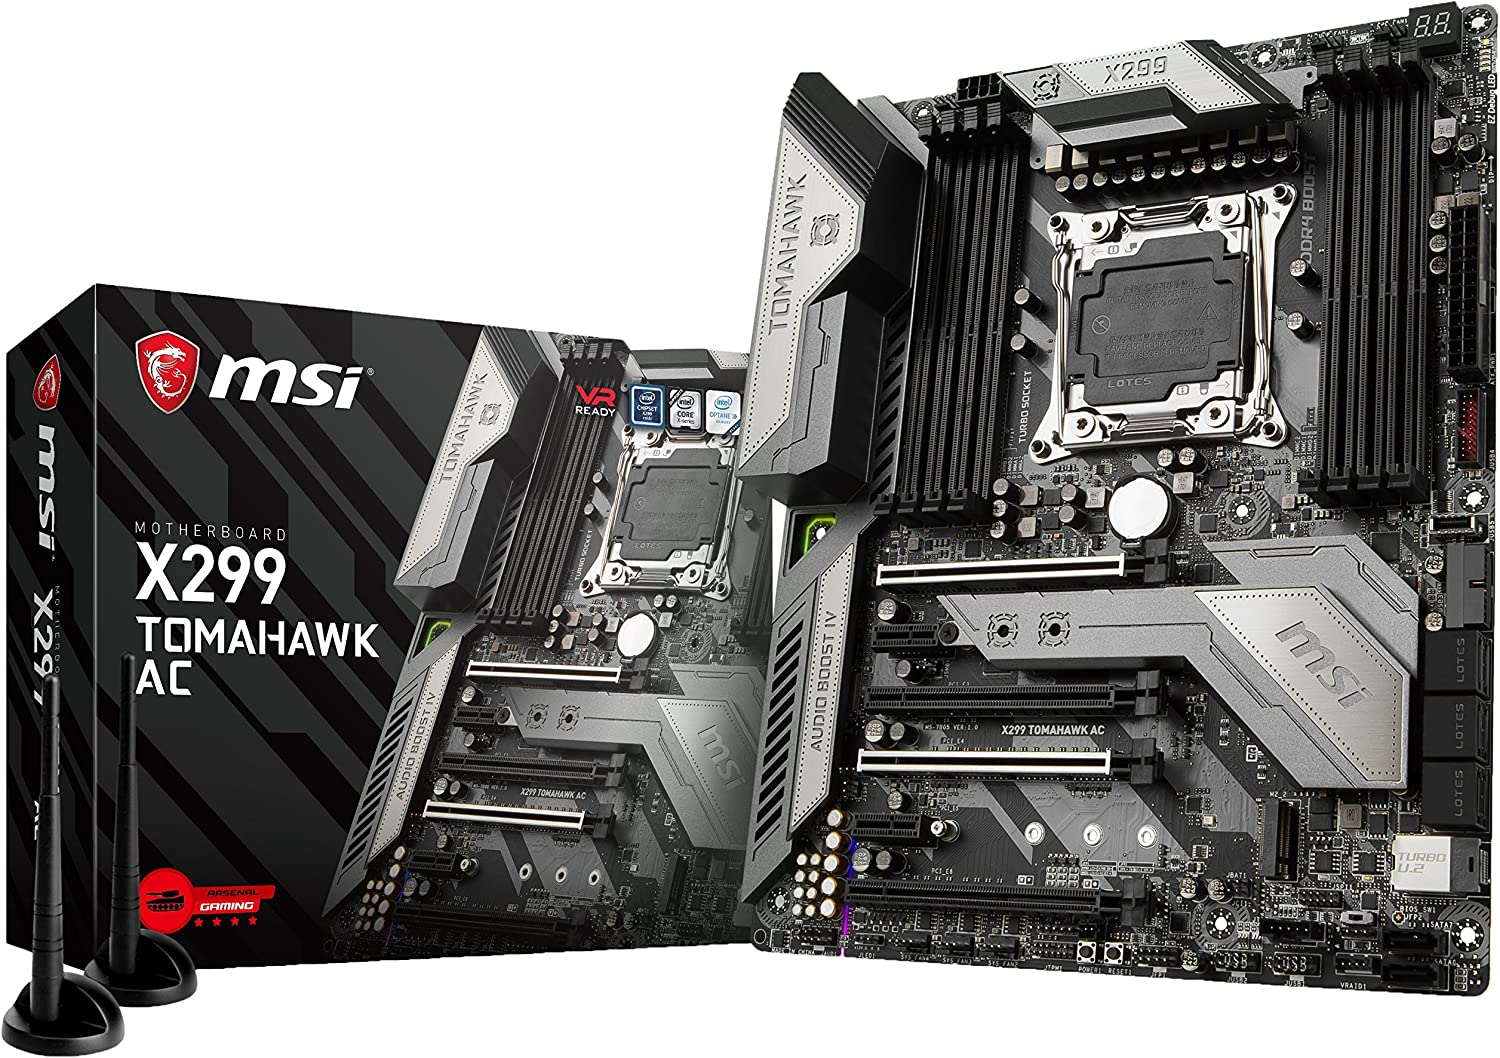 MSI Arsenal Gaming Intel X299 LGA 2066 DDR4 USB 3.1 SLI ATX Motherboard (X299 Tomahawk AC) (Renewed)